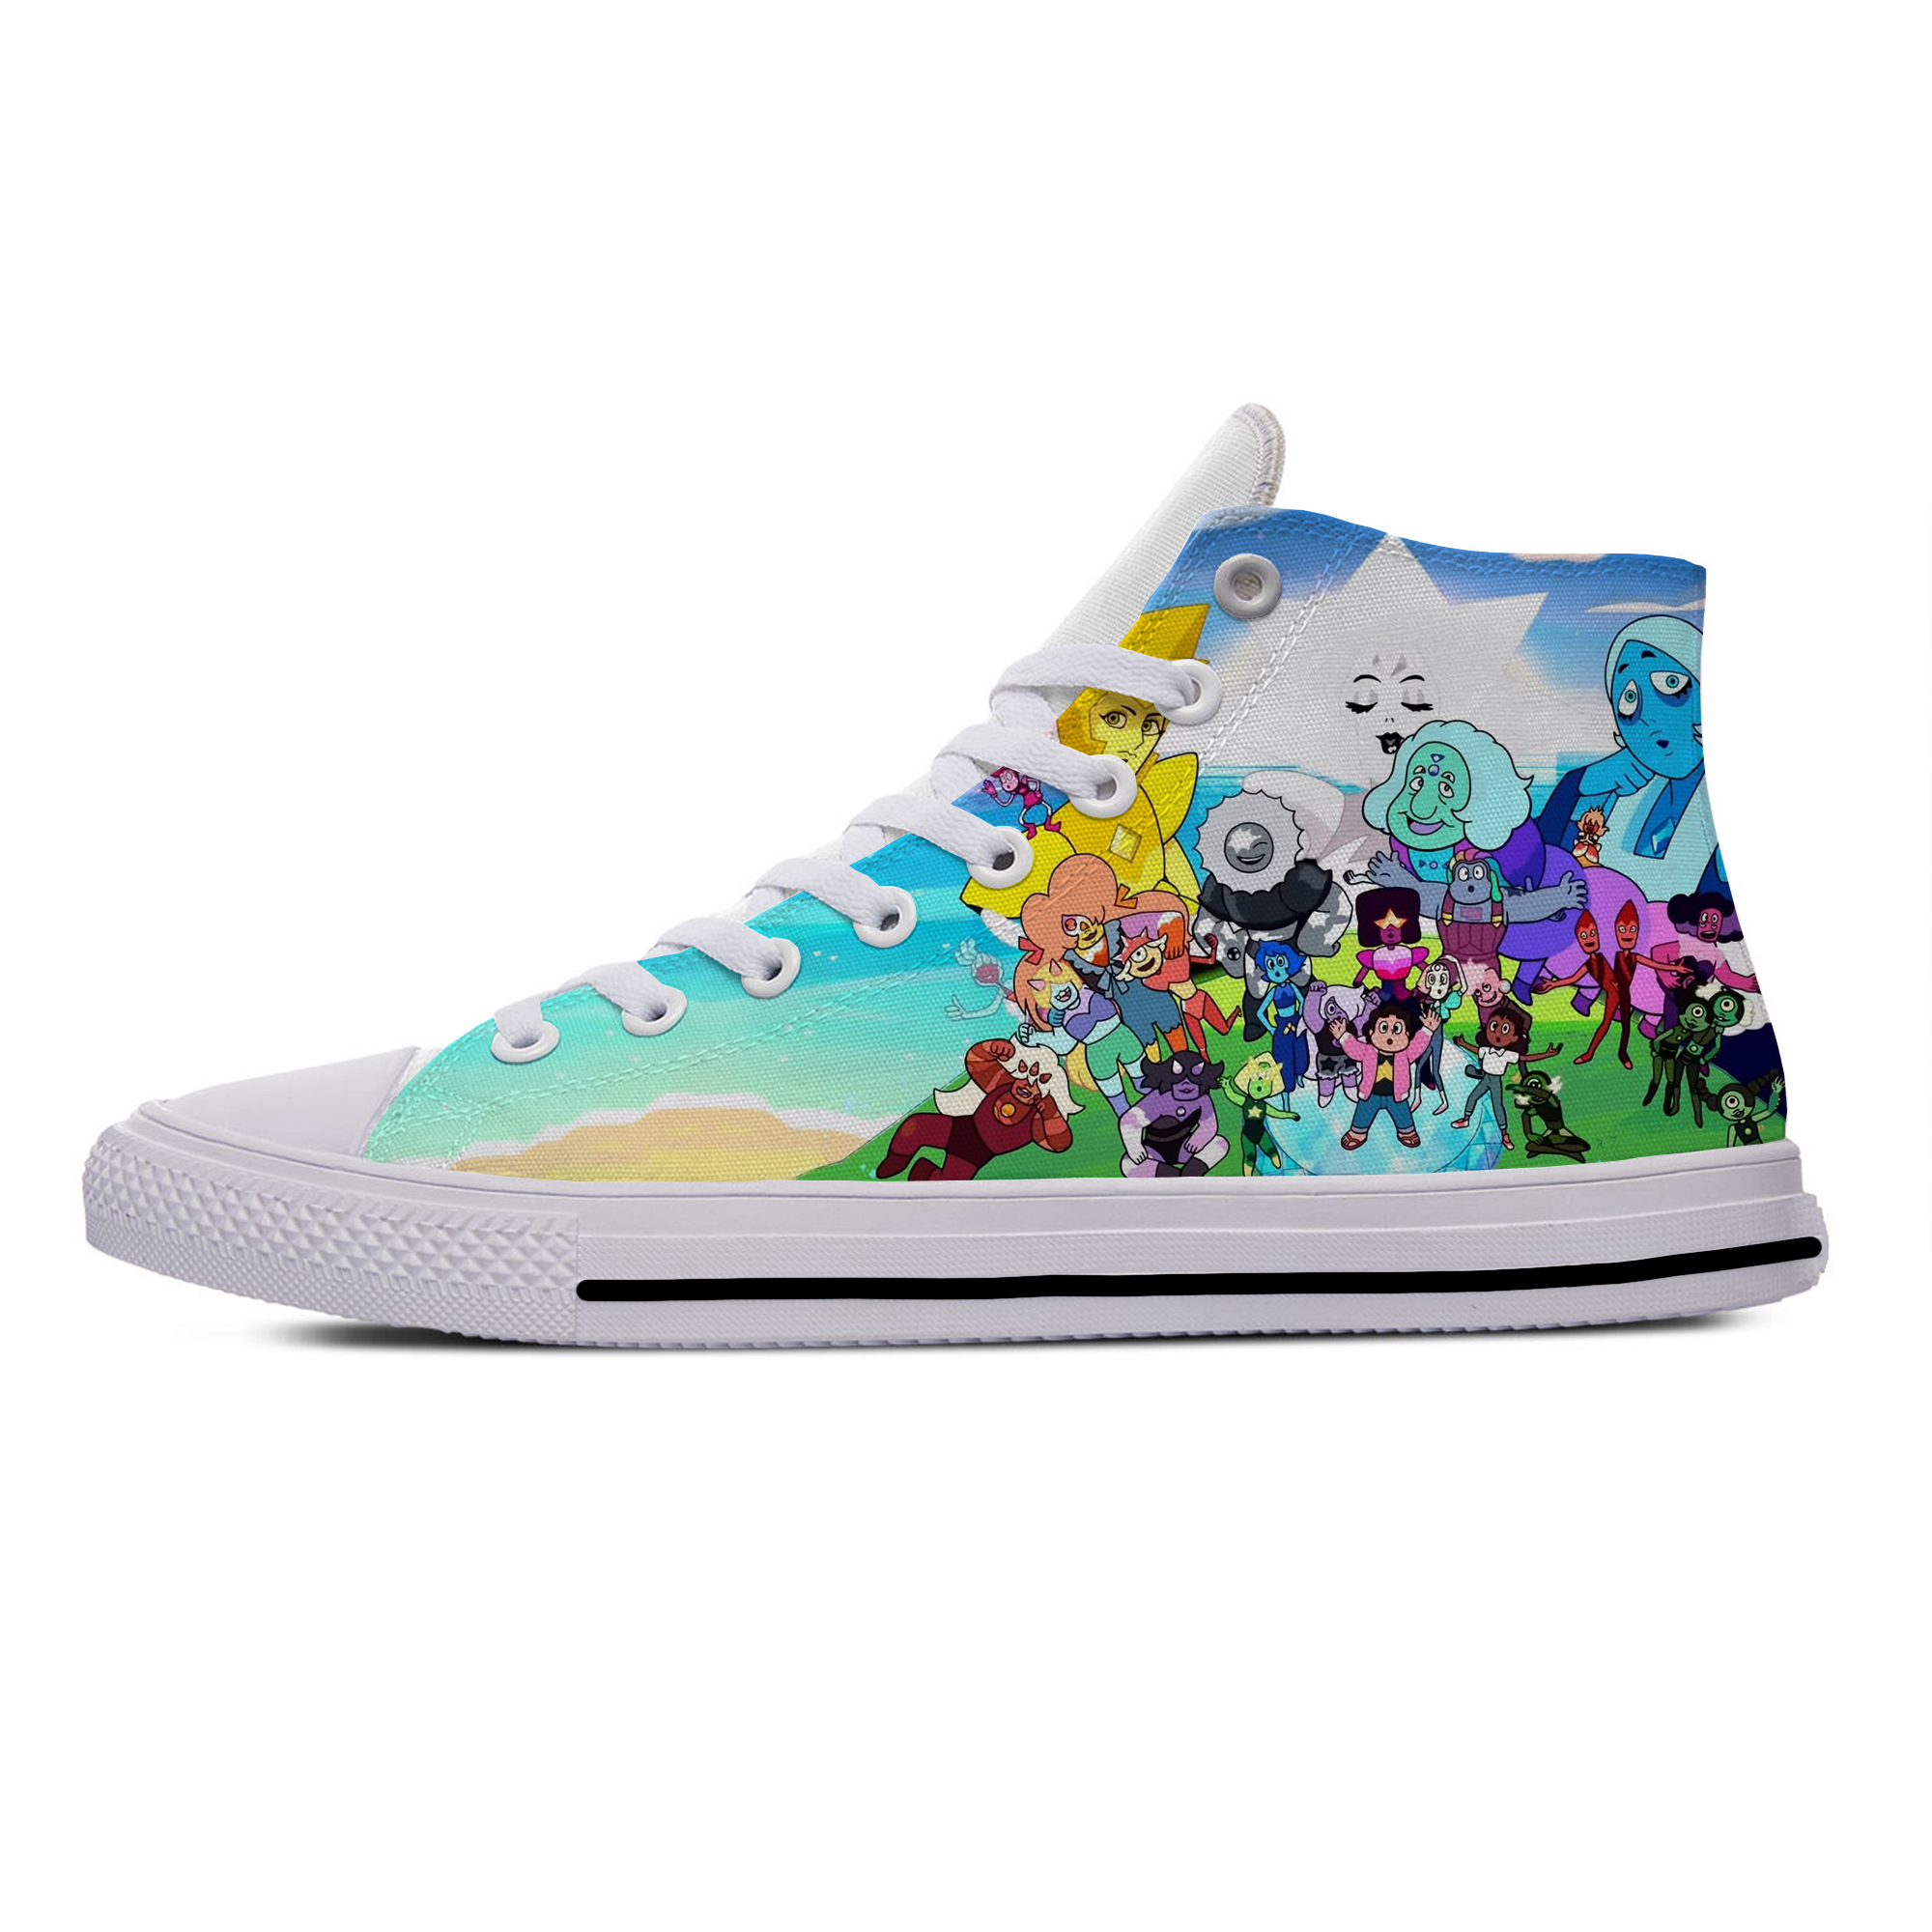 2020 Steven Universe Anime Cartoon Funny Popular Casual Canvas Shoes High Top Lightweight Breathable 3D Print Men Women Sneakers